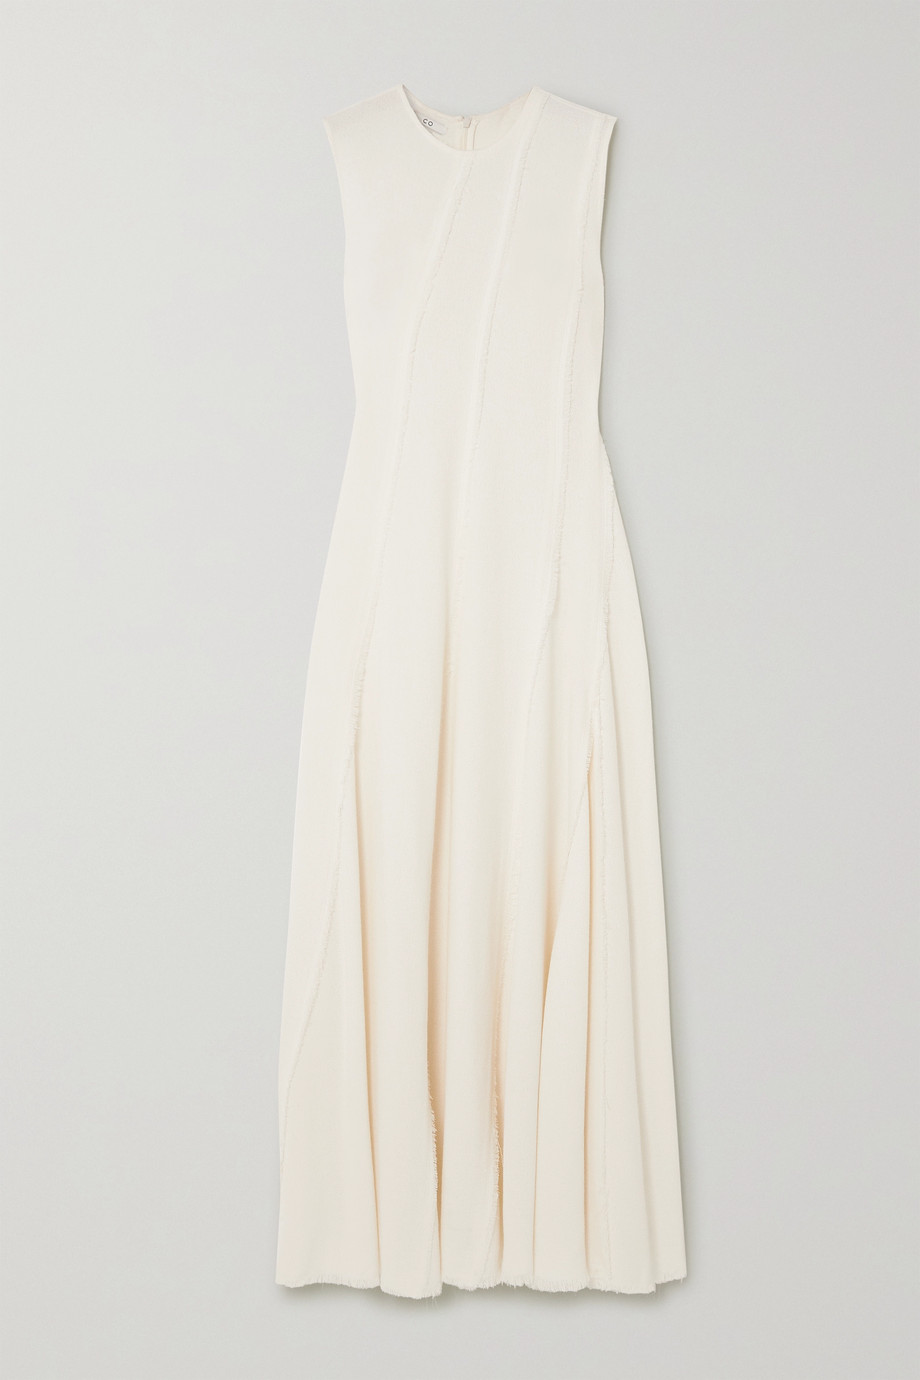 Co | Frayed crepe maxi dress | NET-A-PORTER.COM